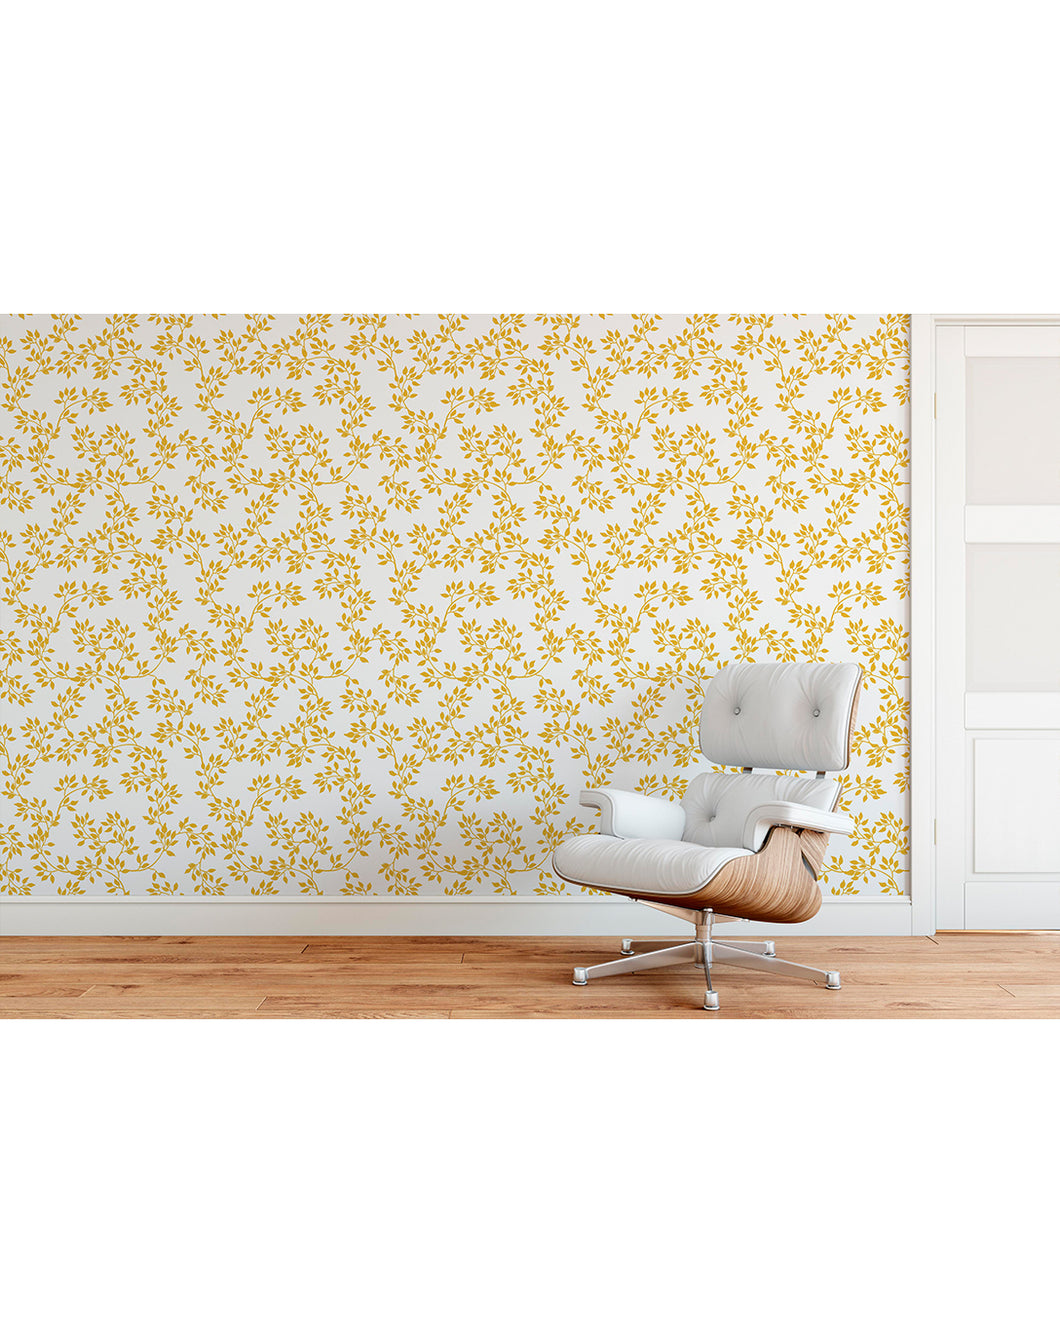 Temporary Self Adhesive Luxury Gold Color Leaves Removable